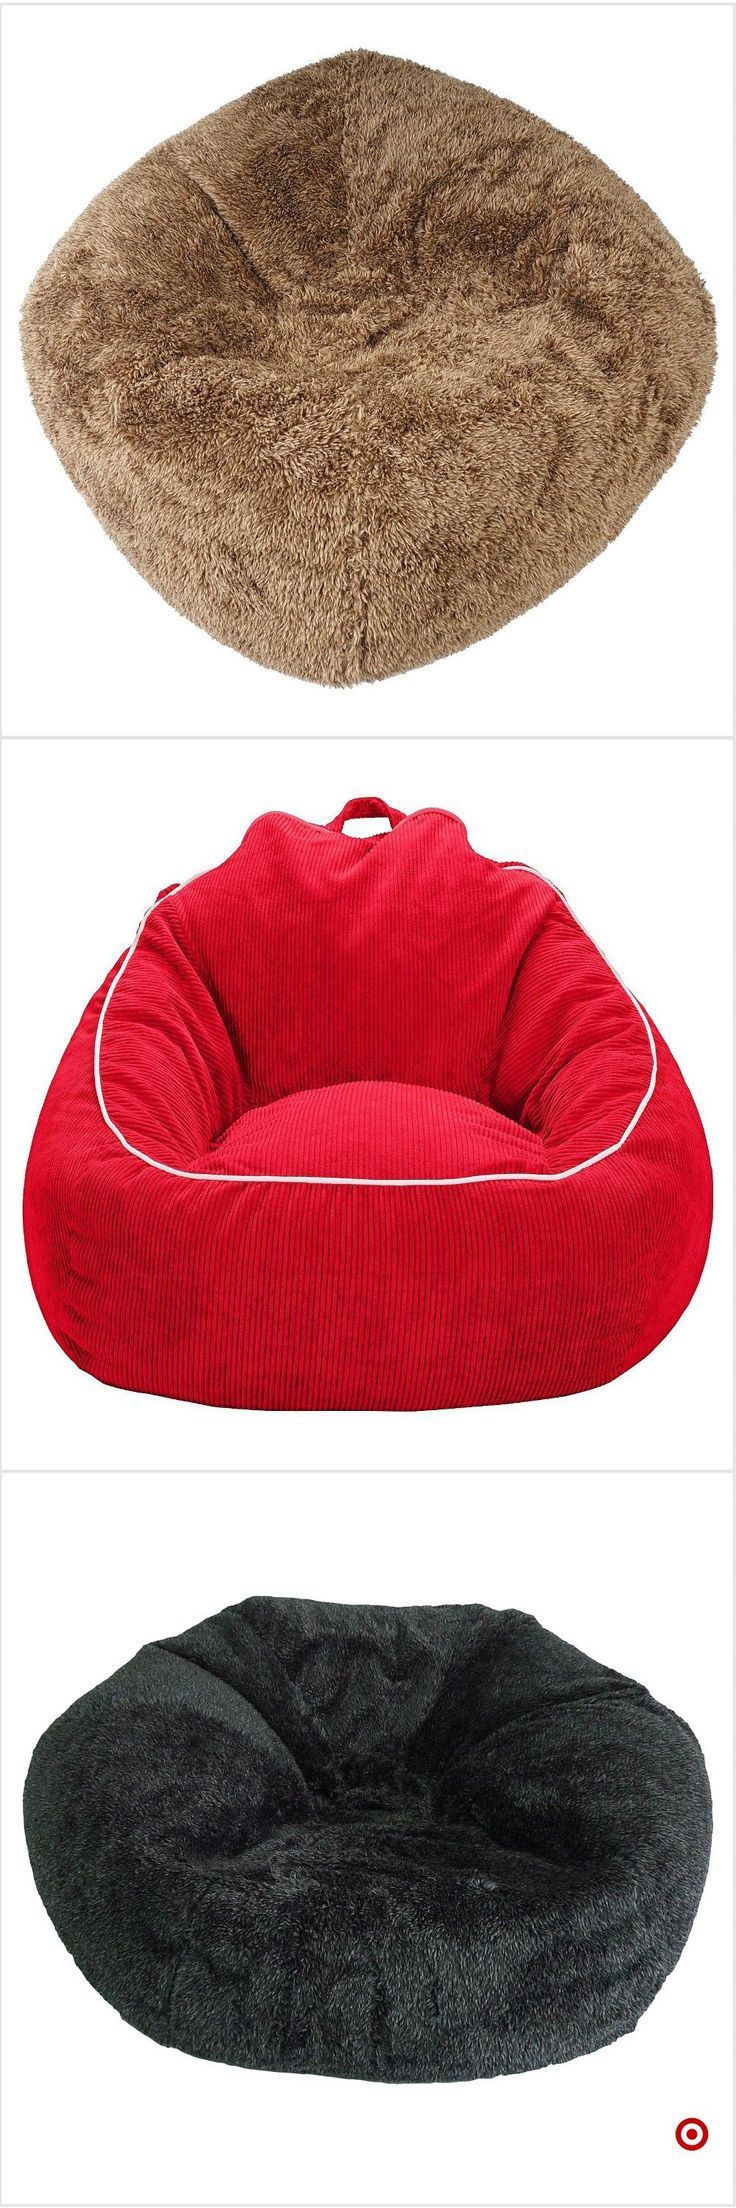 Shop Target for bean bag chair you will love at great low prices. Free shipping on orders of $35+ or free same-day pick-up in store. #malebag #malebagfemale #malebagwomen #malebagcanada #bag #bags #canada